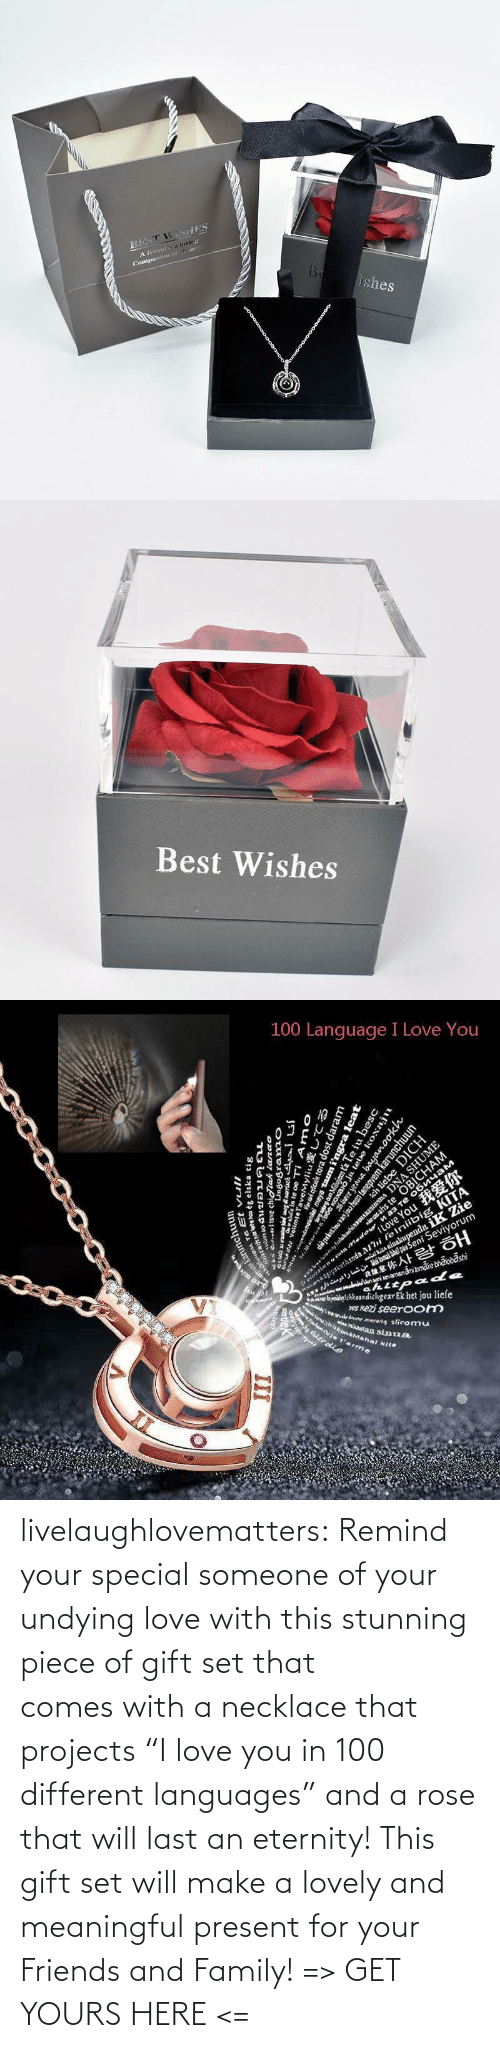 "Last: livelaughlovematters:  Remind your special someone of your undying love with this stunning piece of gift set that comes with a necklace that projects ""I love you in 100 different languages"" and a rose that will last an eternity! This gift set will make a lovely and meaningful present for your Friends and Family! => GET YOURS HERE <="